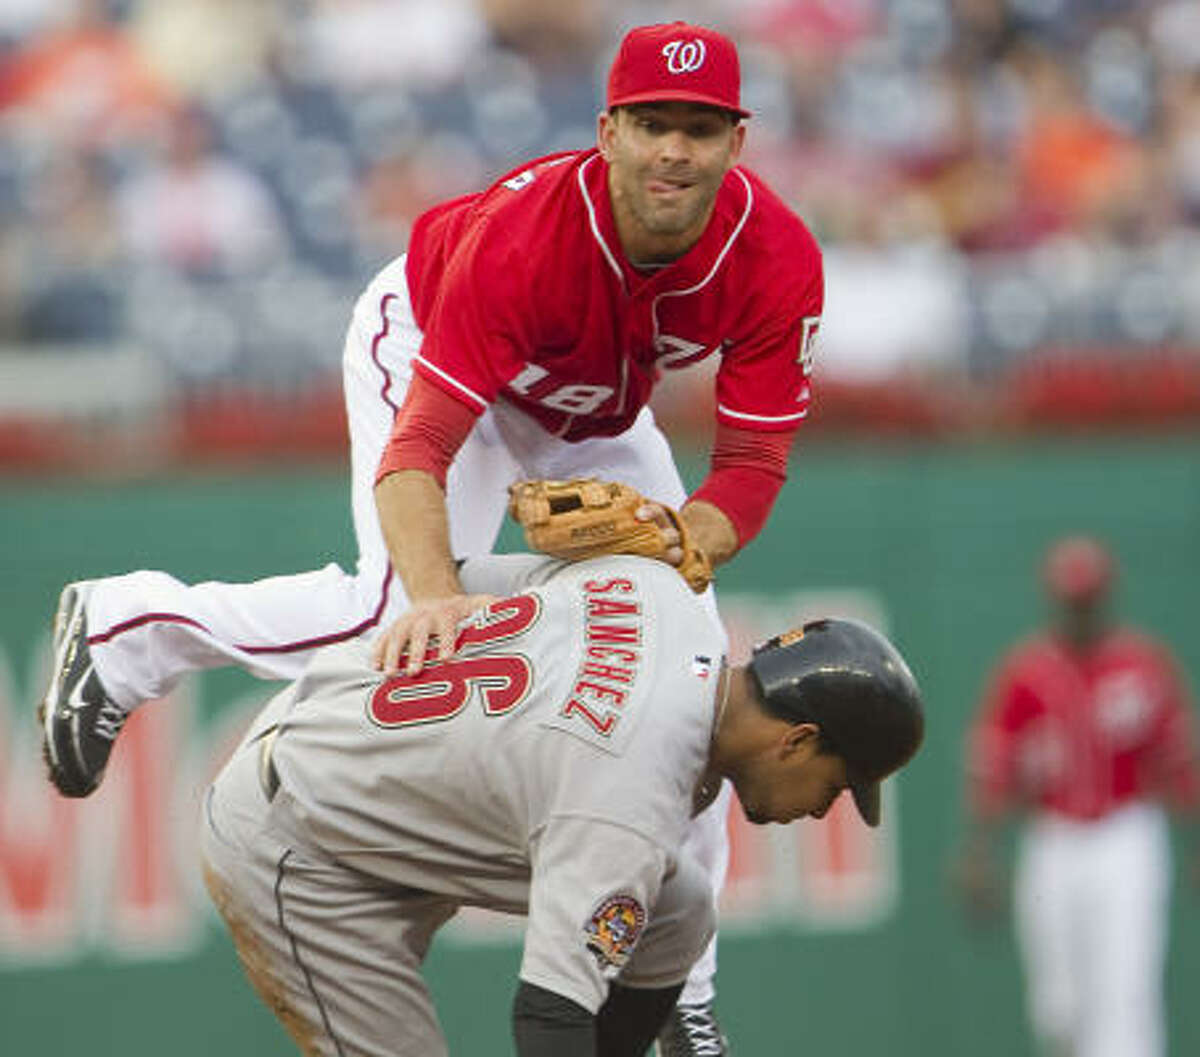 Sept. 23: Nationals 7, Astros 2 Astros shortstop Angel Sanchez slides into Nationals second baseman Danny Espinosa as Espinosa turns a double play to end the second inning.